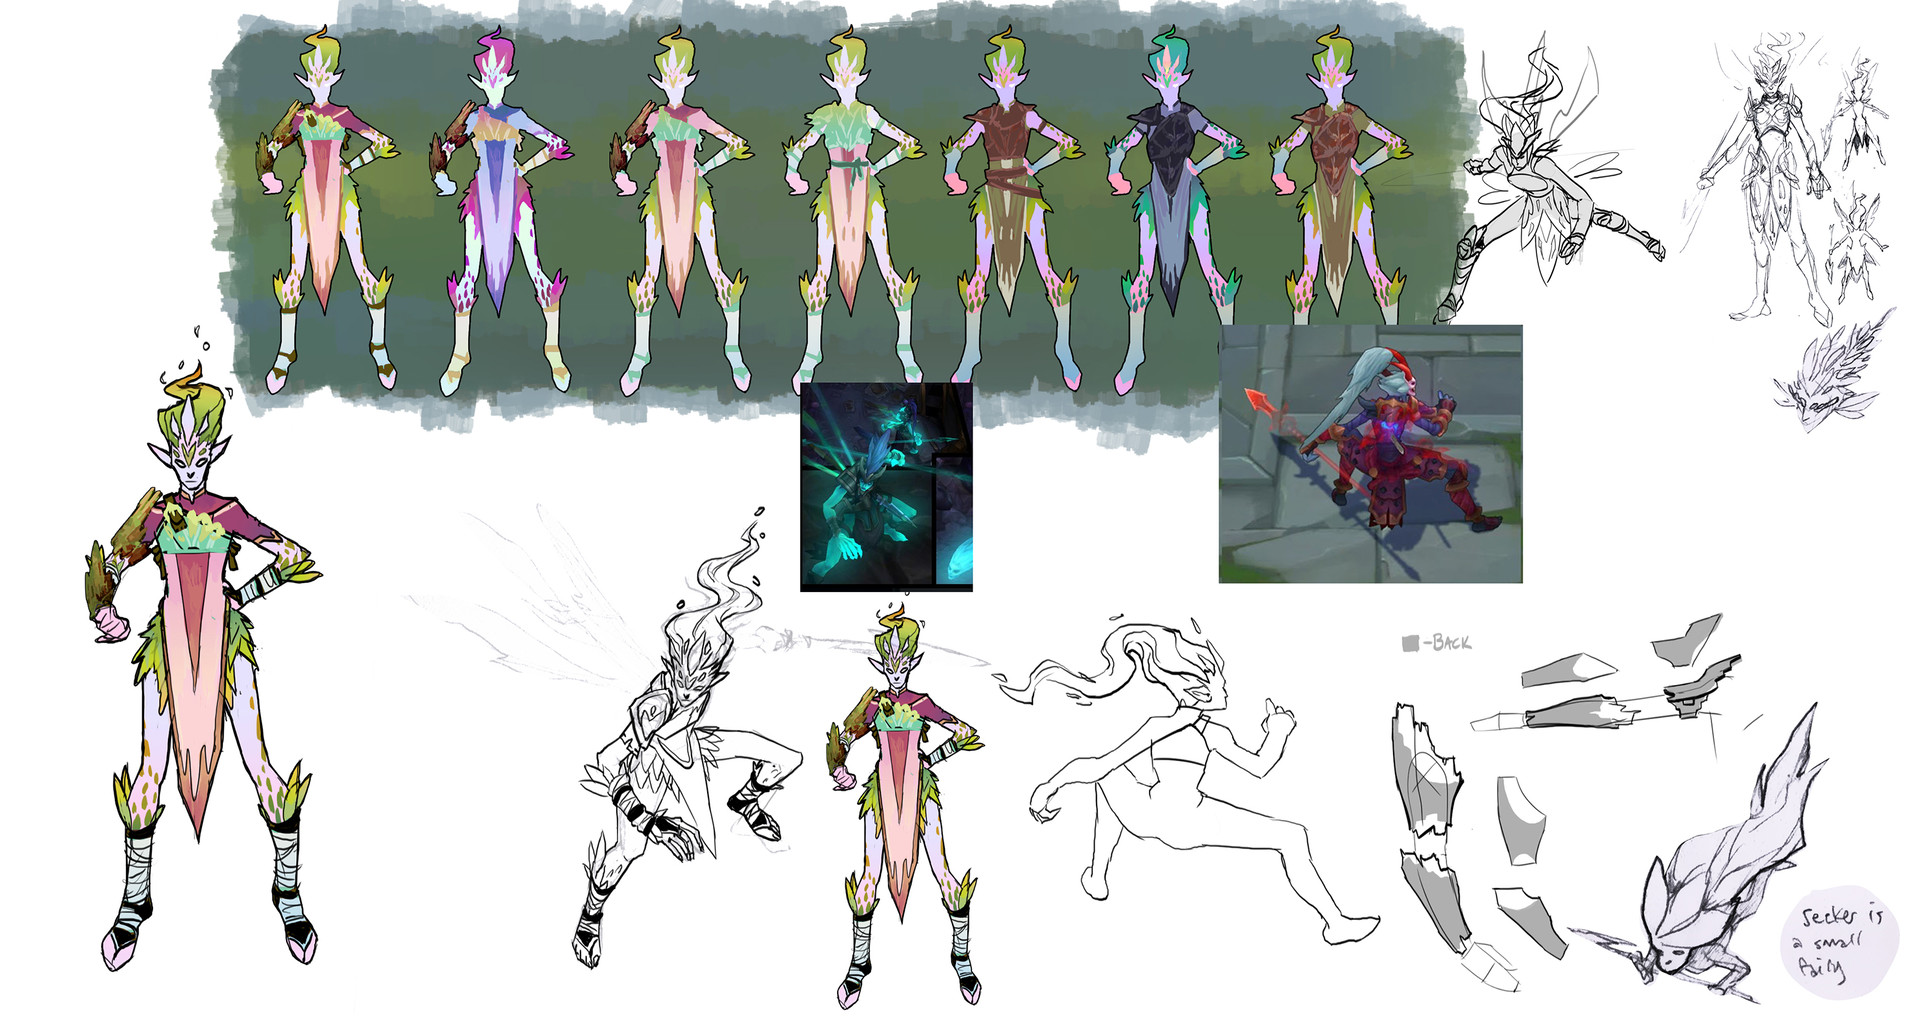 Kelsey martin kalista faerieguard sketches small